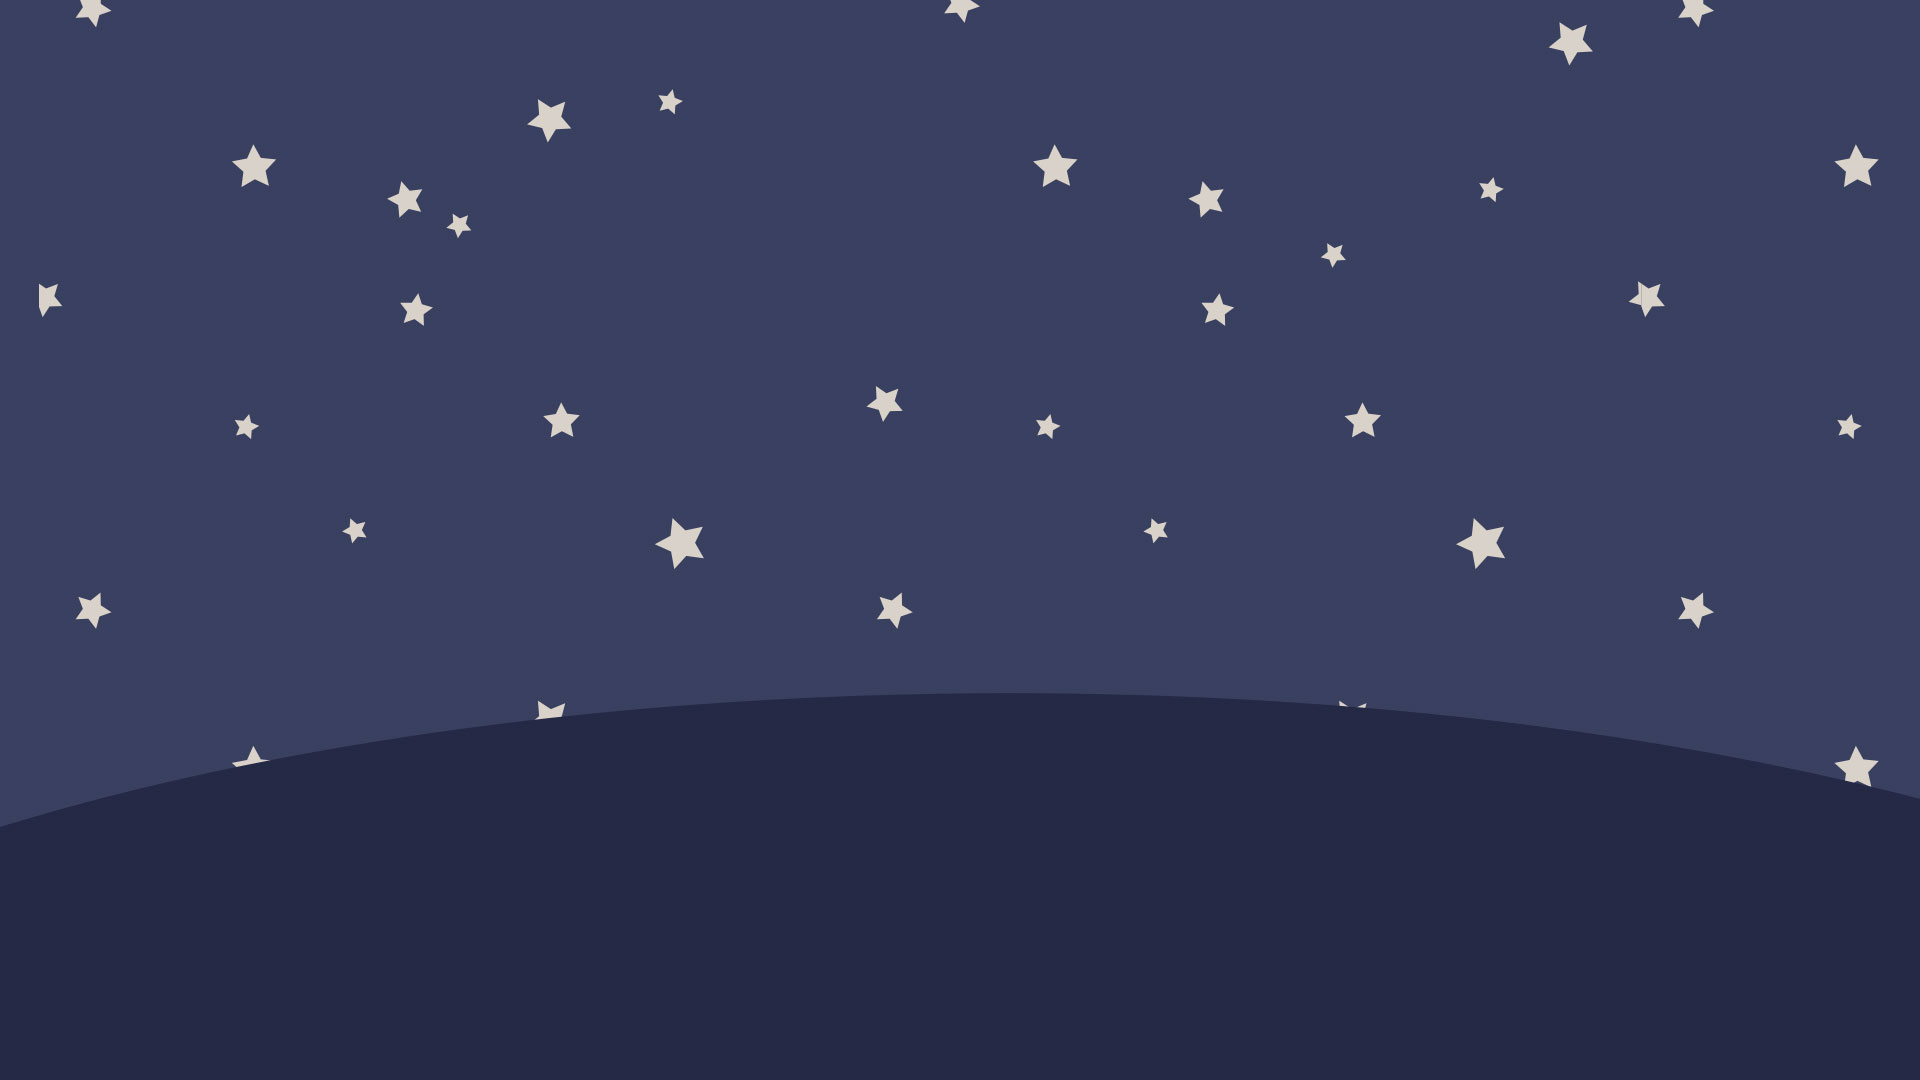 BLAW-home-page-starry-sky